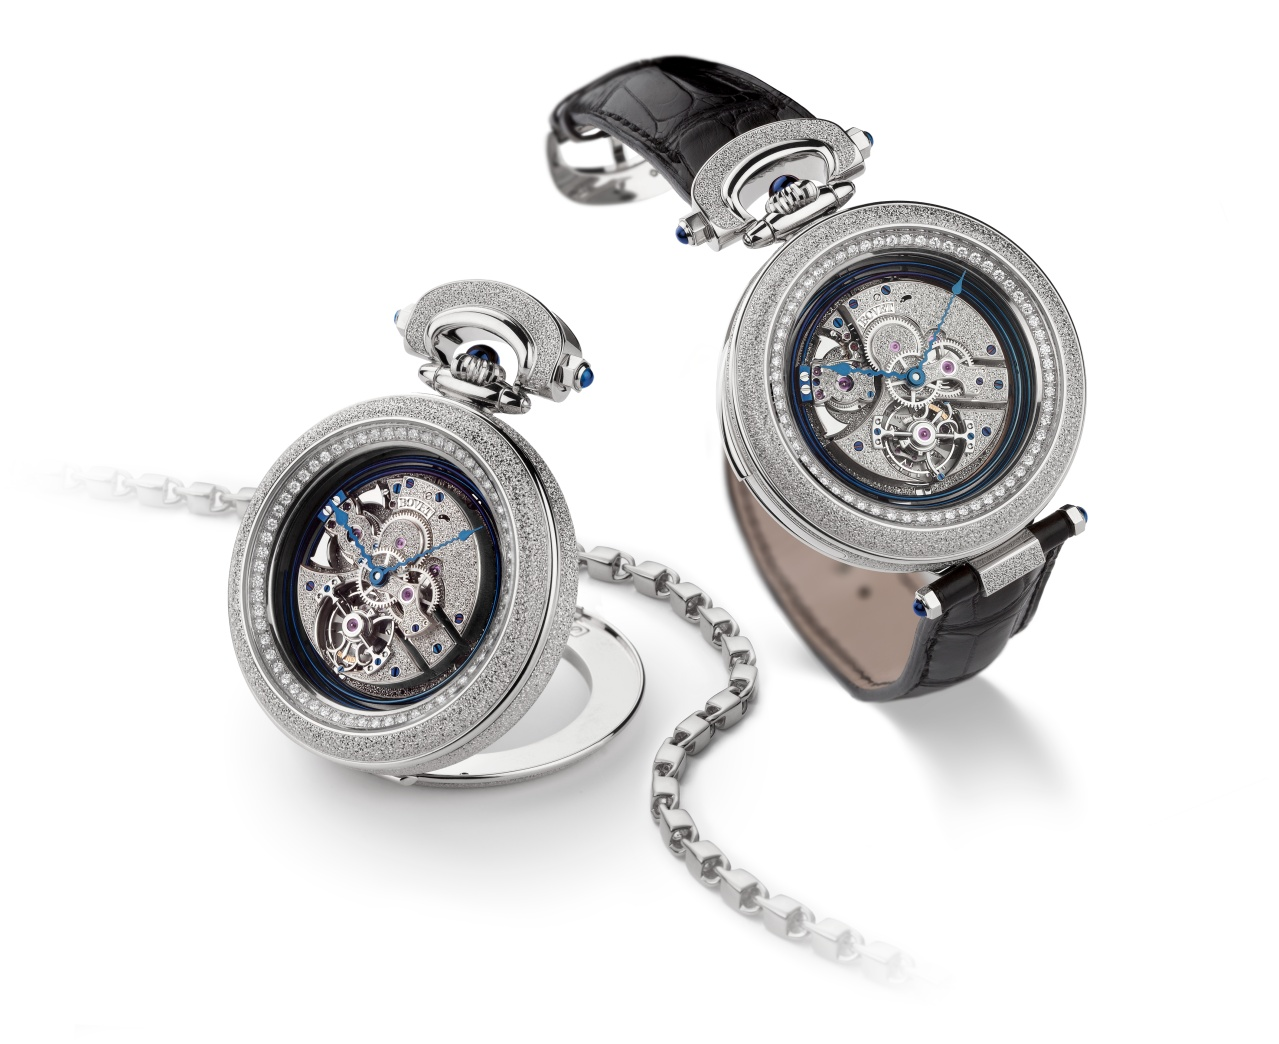 Bovet Watch   Amadeo Fleurier Grandes Complications   Ref. Nr. AIRMO22-C1234    Call 312-944-3100  | For Availability